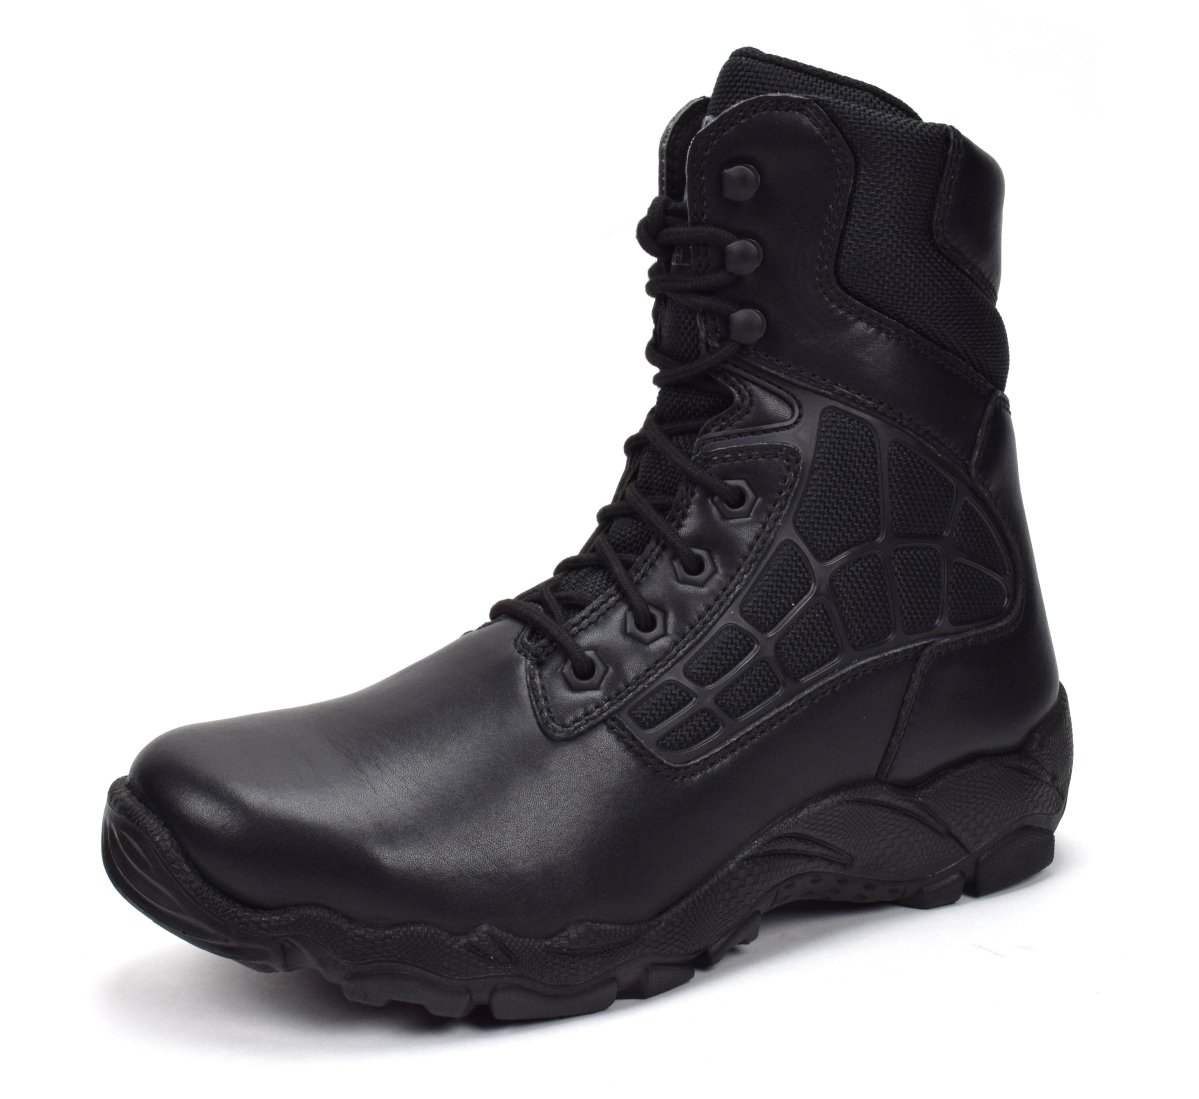 CONDOR Arizona Men's 8'' Steel Toe Work Boot - Black, Size 12 E US